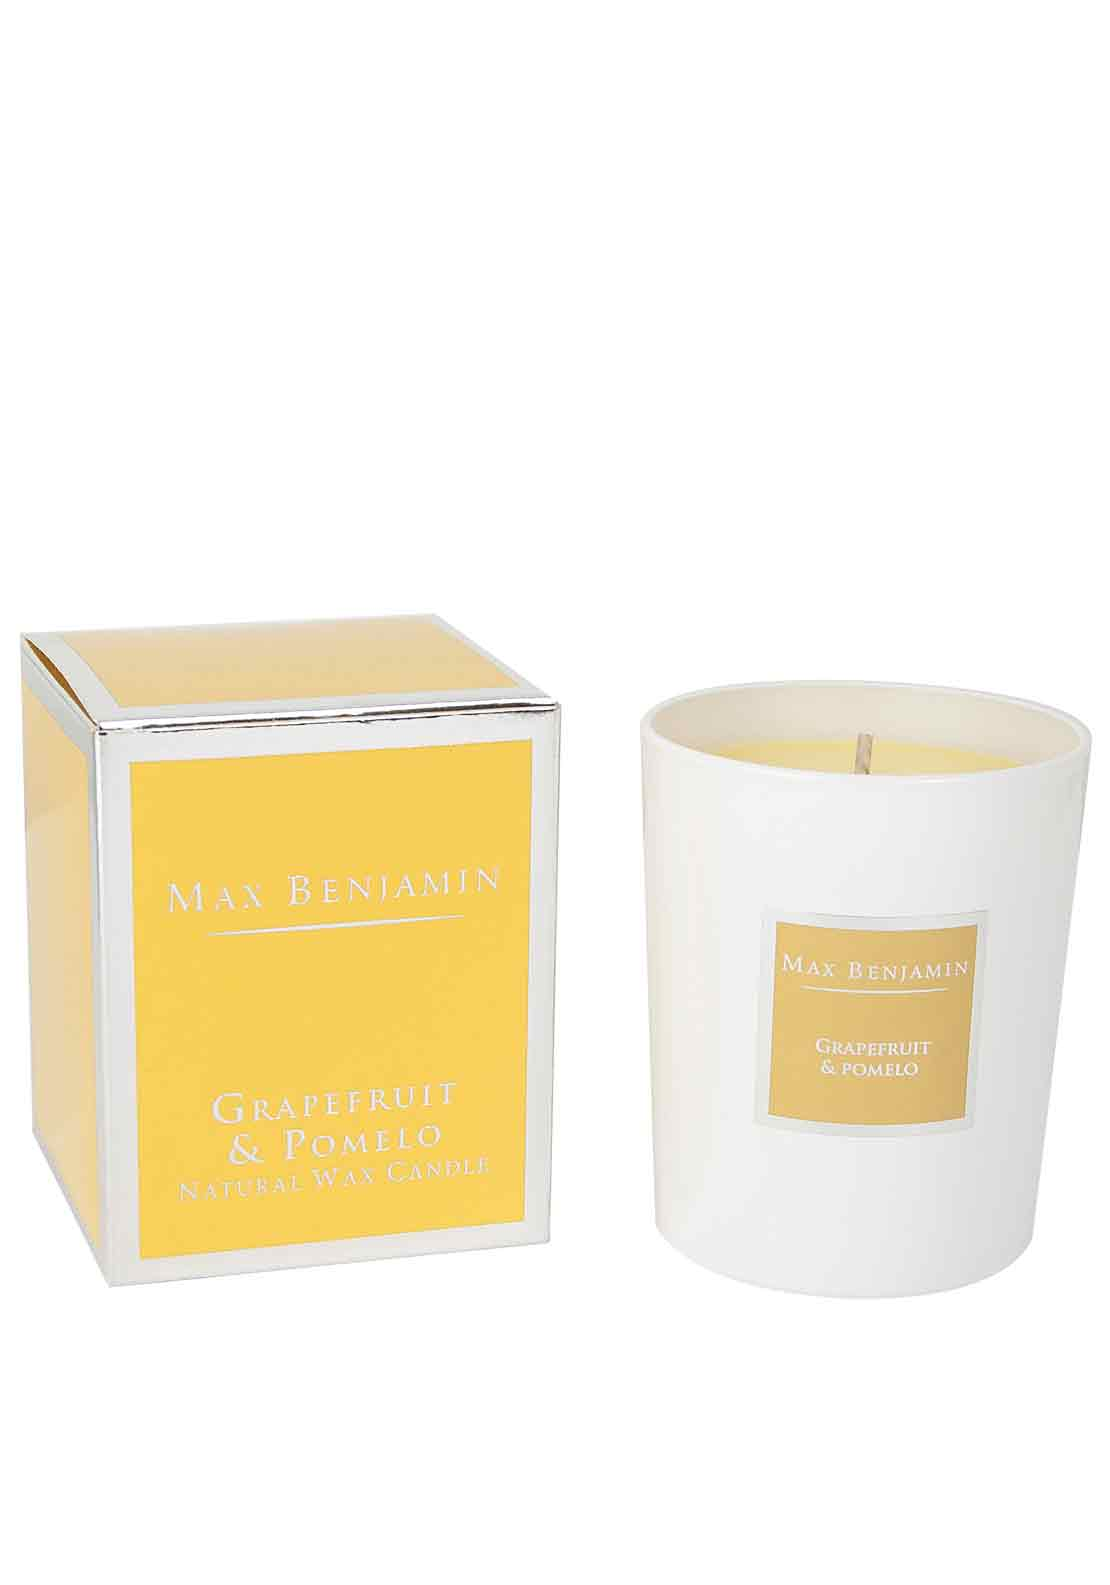 Max Benjamin Grapefruit & Pomelo Scented Candle | McElhinneys